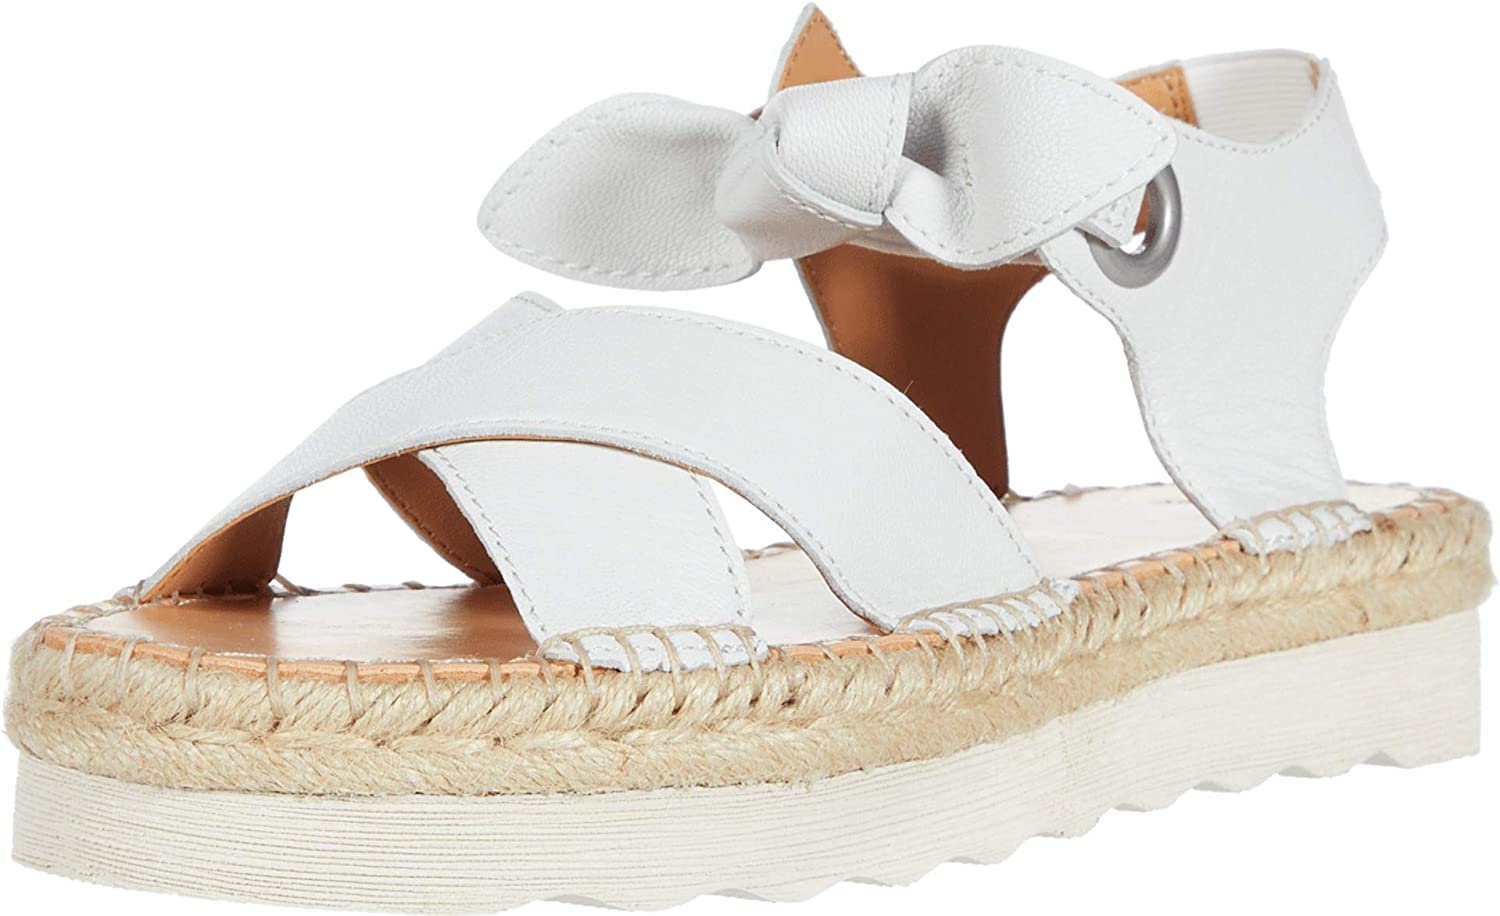 Frye OFFer and Co. Women's Lula Espadrille Wedge Ranking TOP9 Bow Sandal